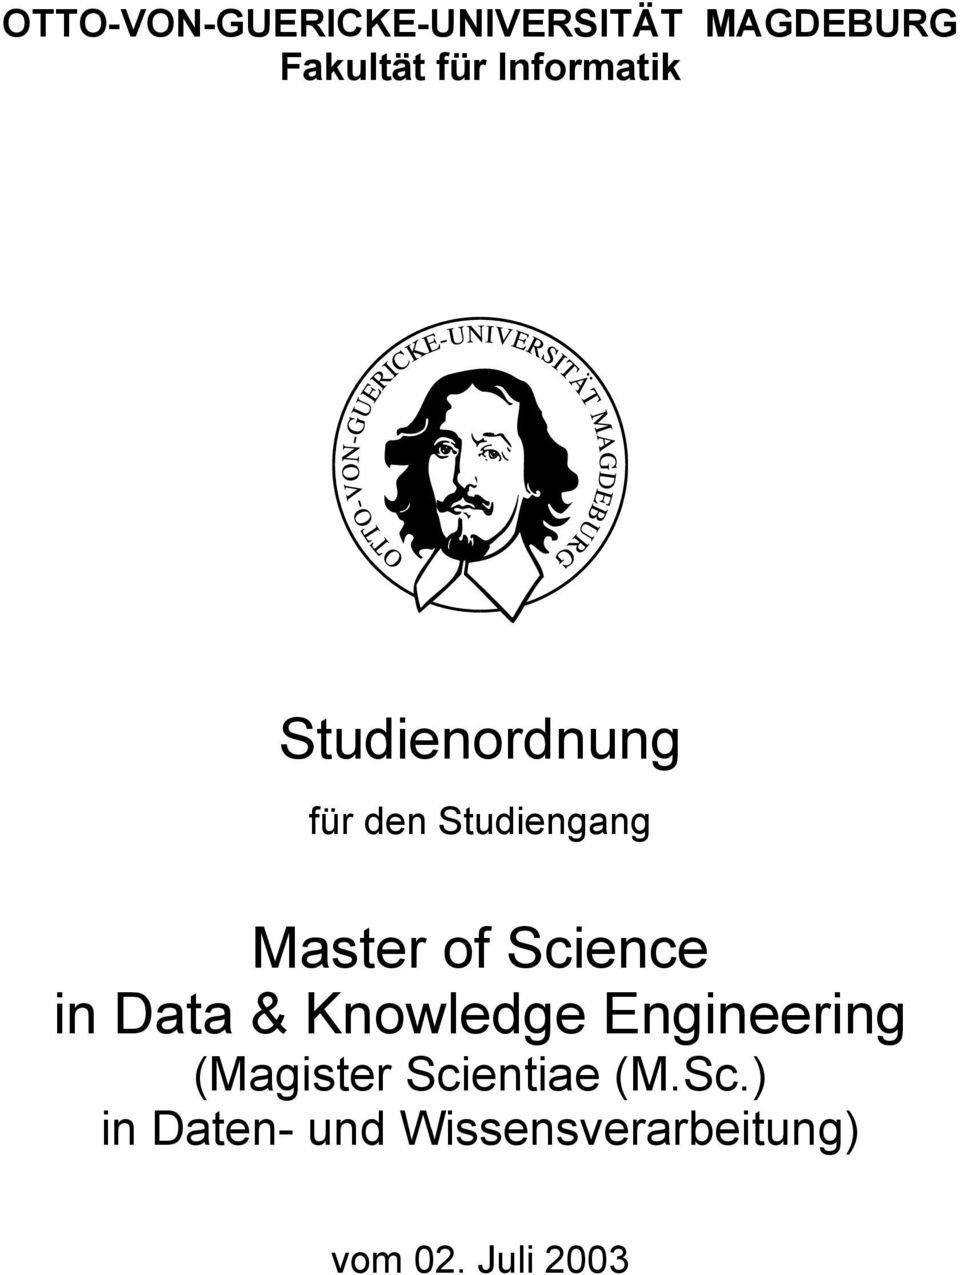 Science in Data & Knowledge Engineering (Magister